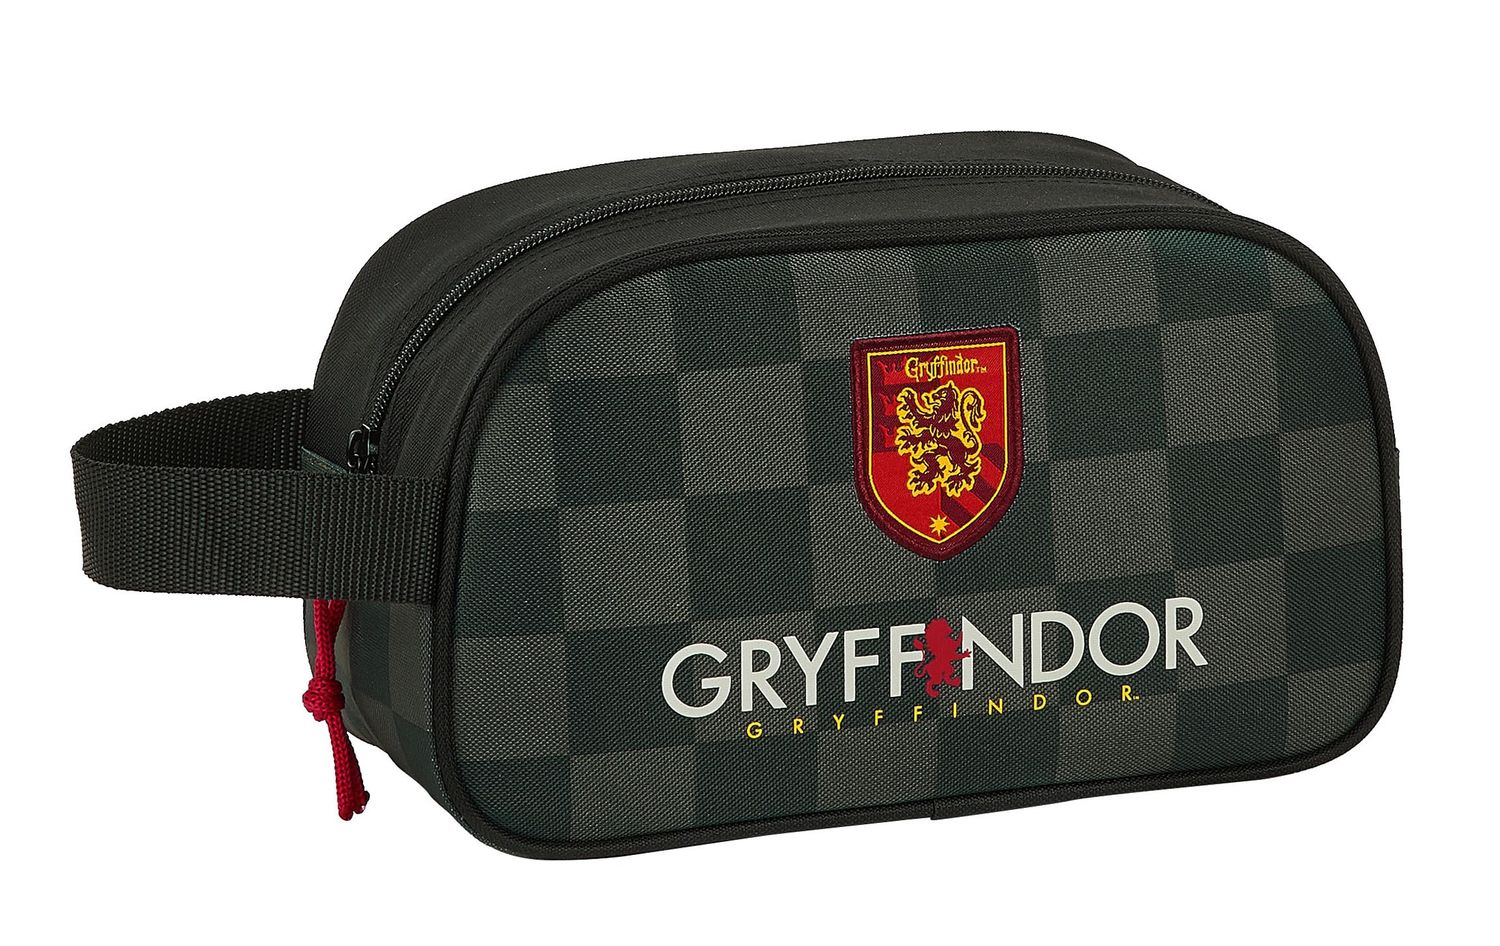 HARRY POTTER GRYFFINDOR Toiletry Travel Bag – image 1